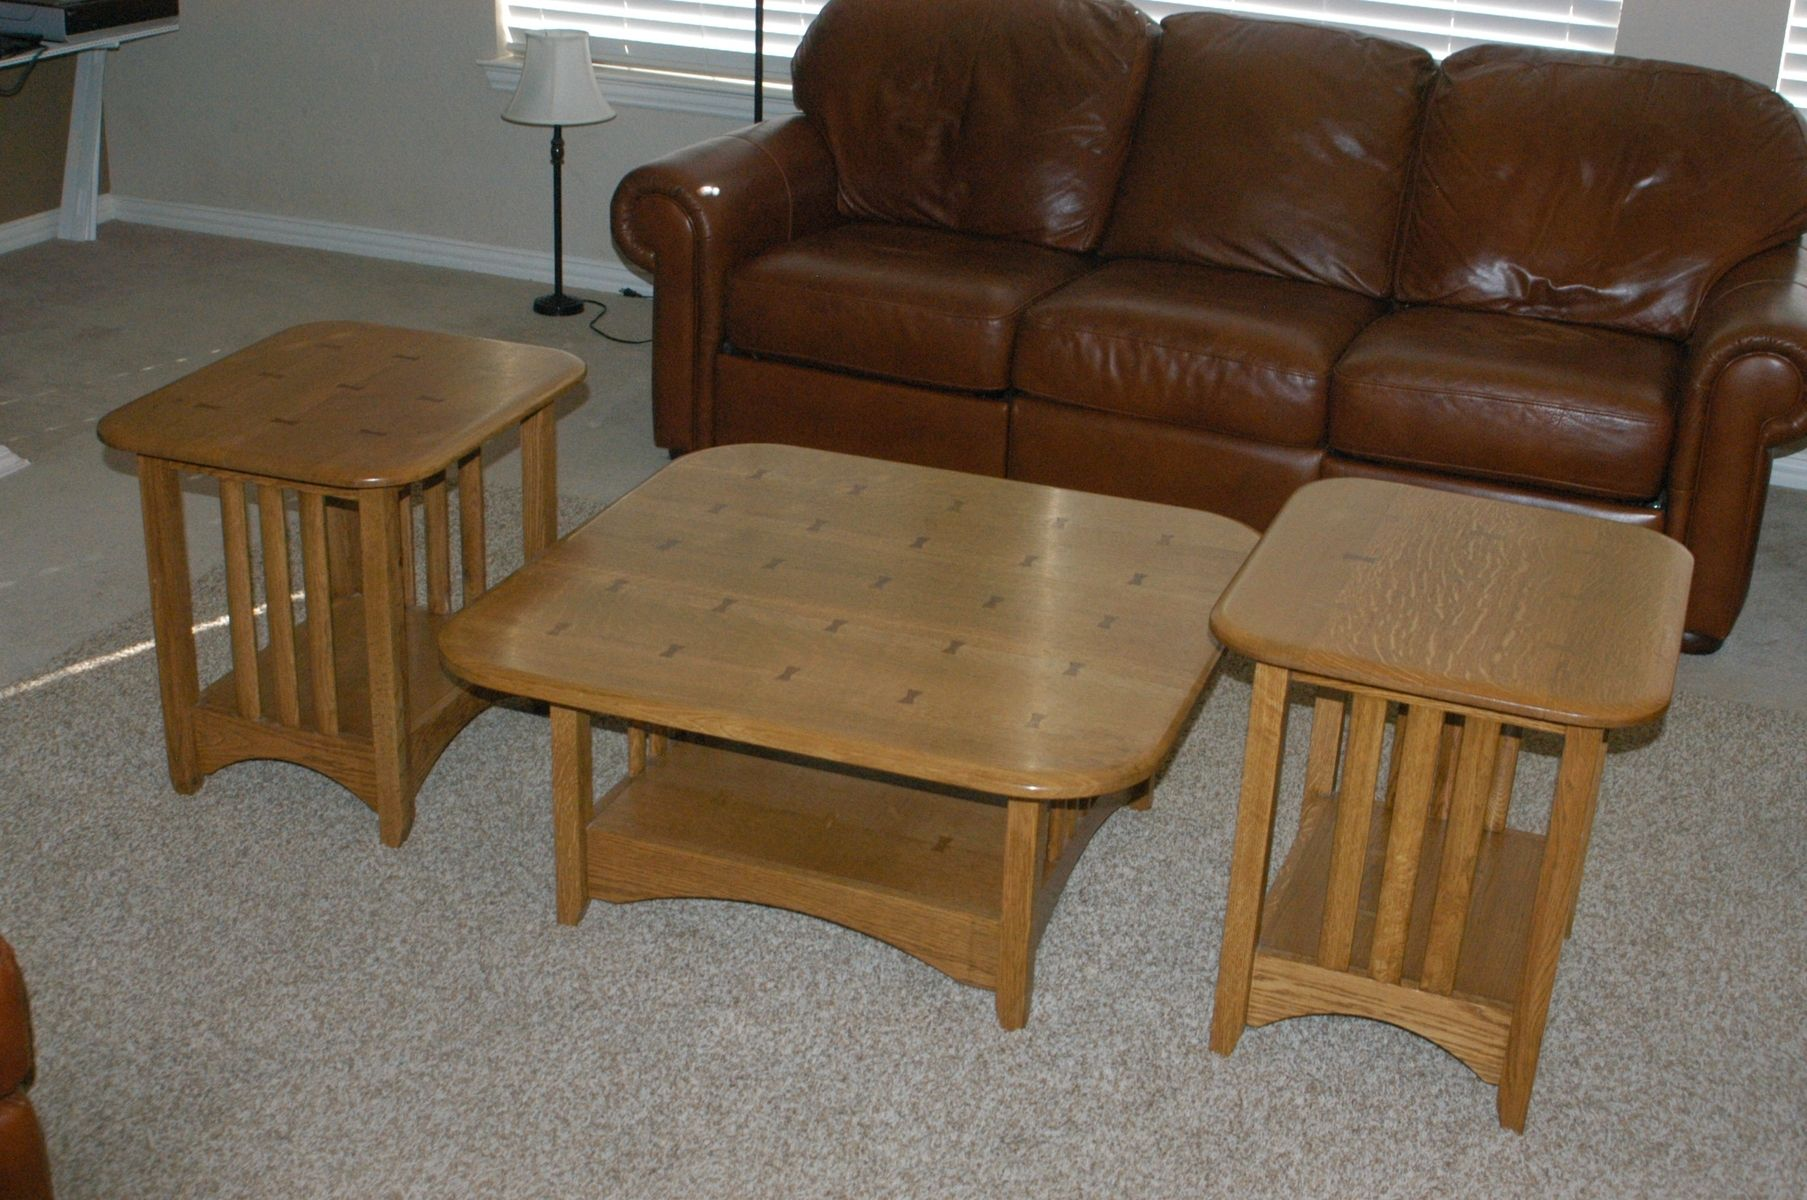 Hand Crafted Mission Style Coffee Table And End Tables Quarter Sawn White Oak By Prg Designs